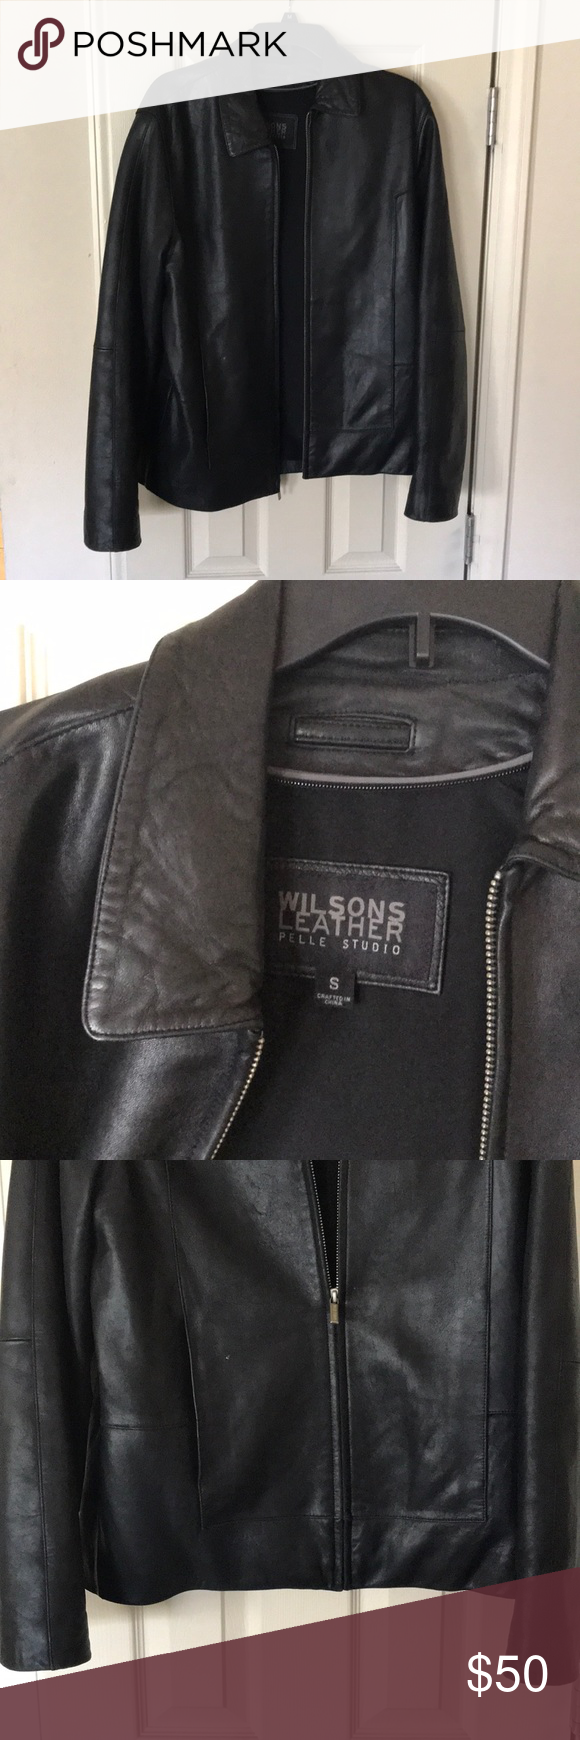 **CLOSE OUT SALE** Men's Wilson Leather Jacket Men's